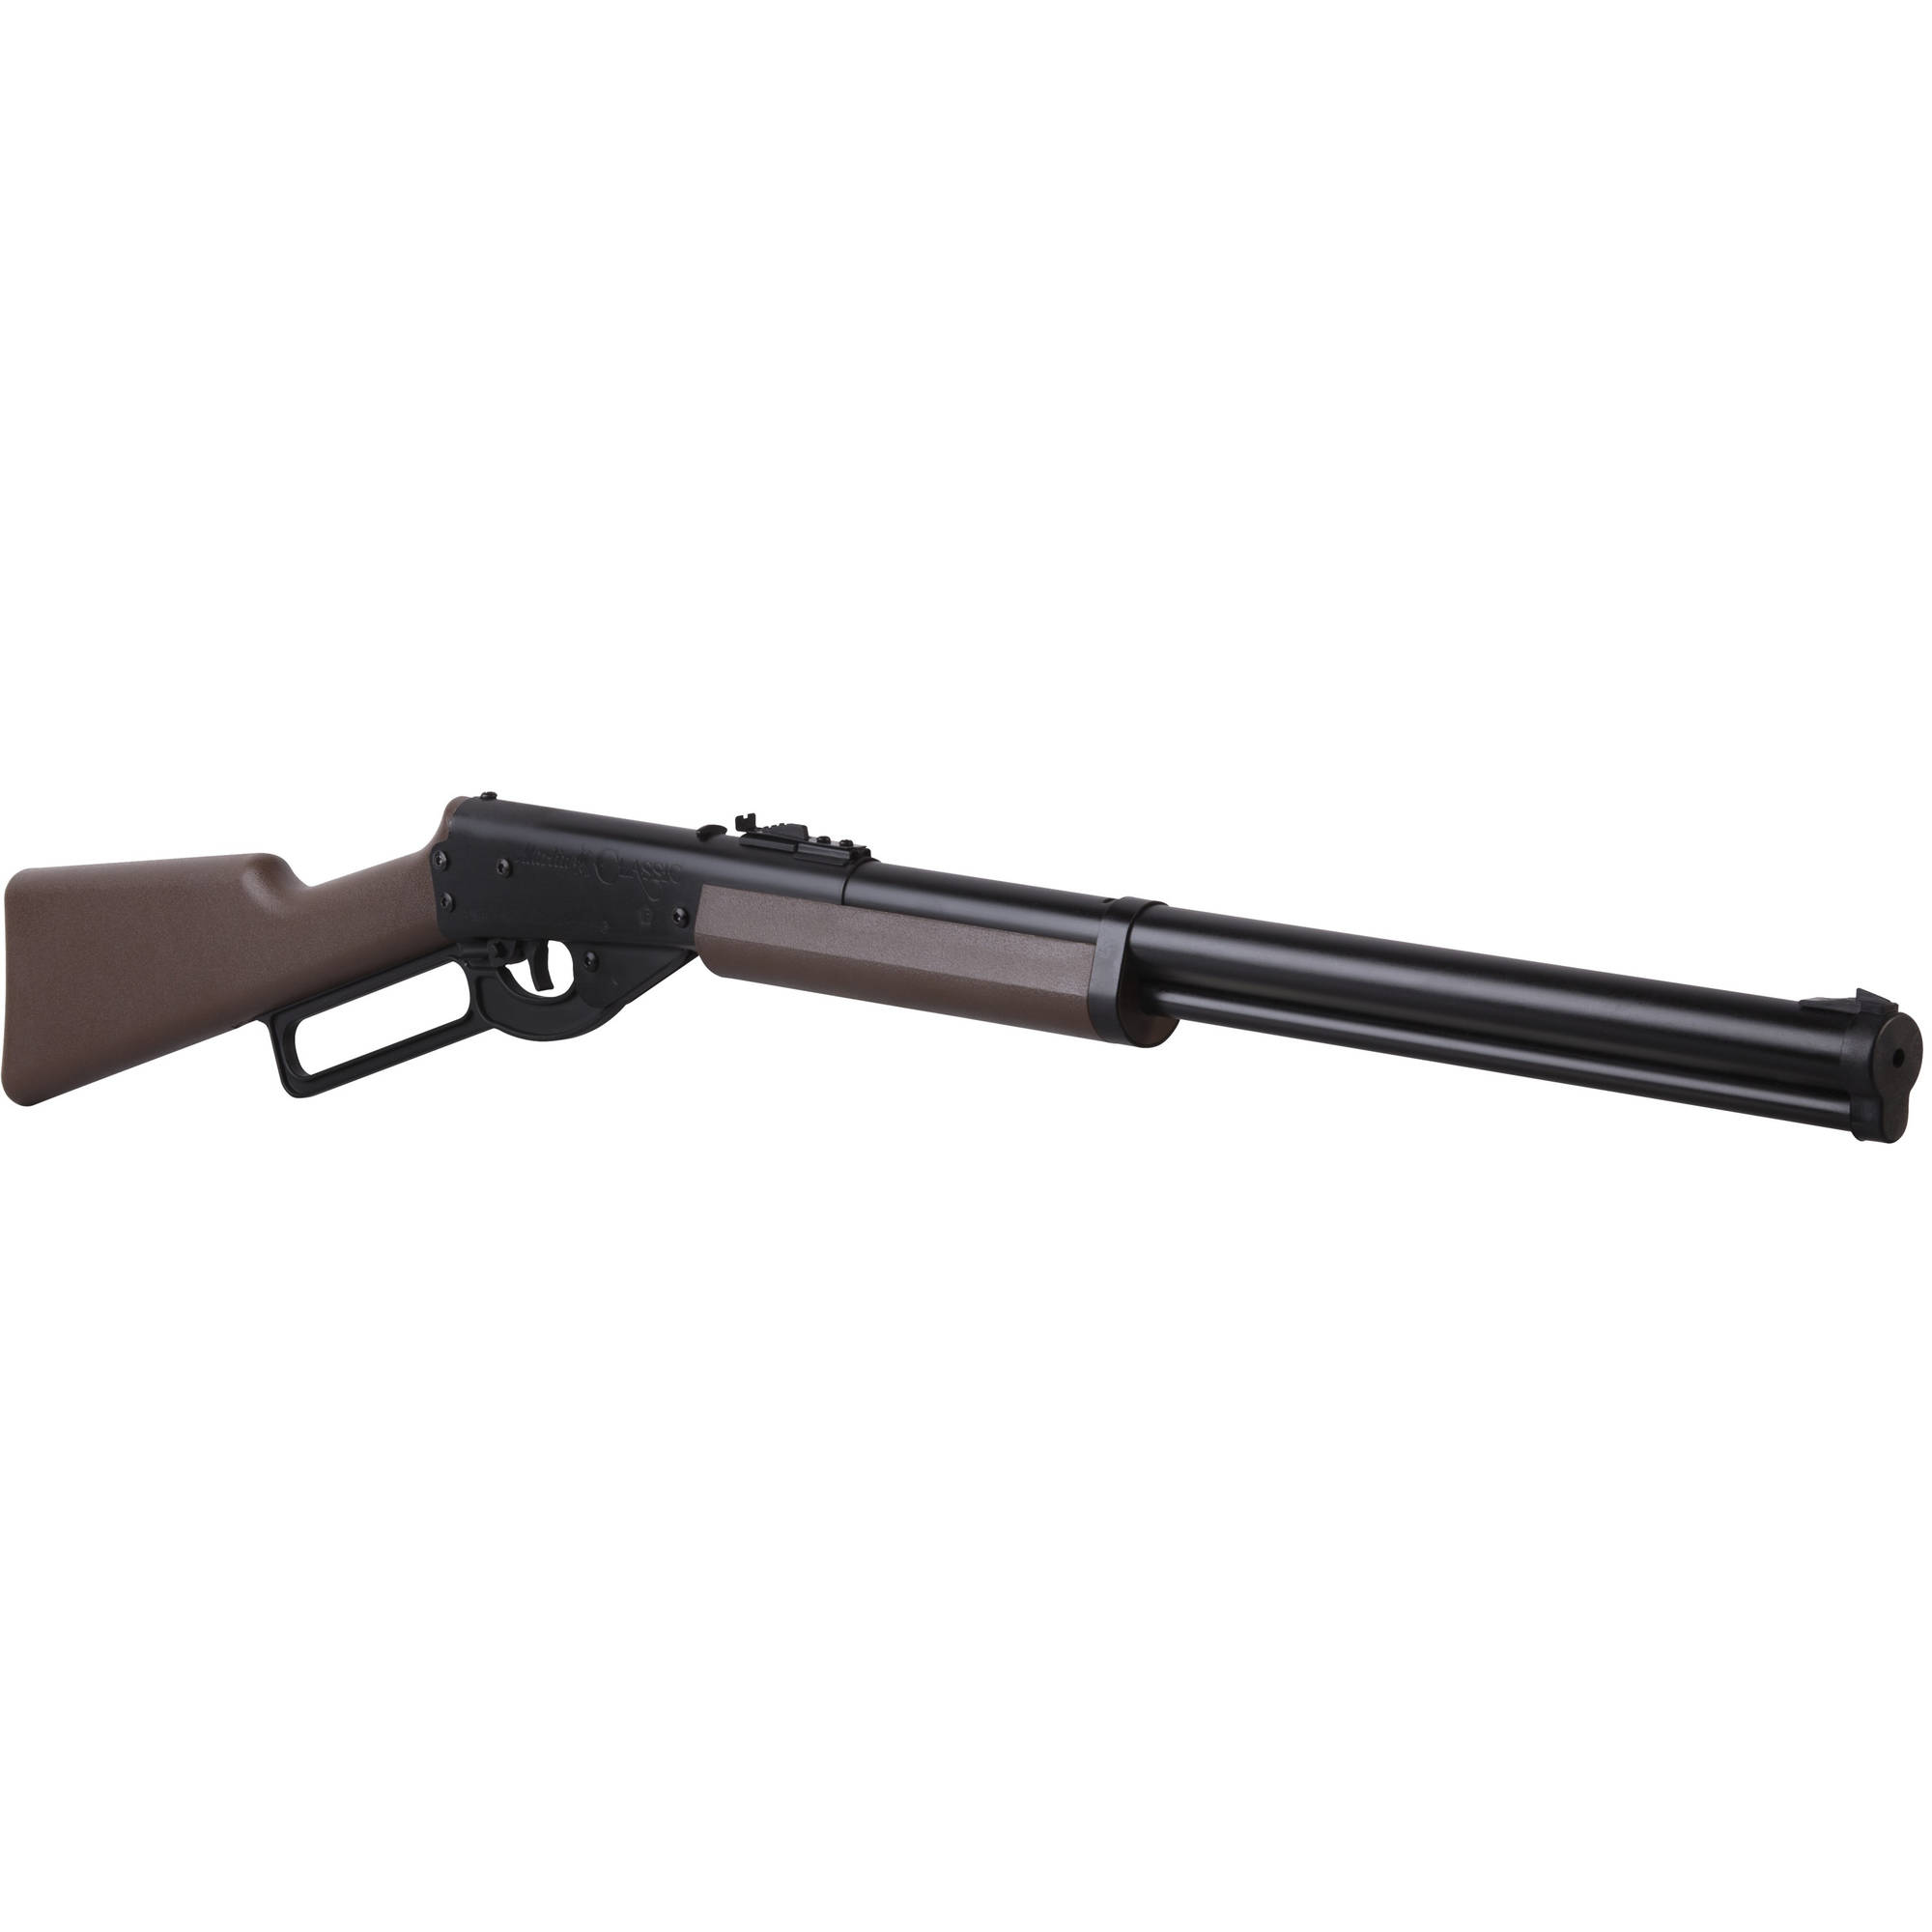 Marlin Classic .177 Caliber Youth Lever Action Air Rifle by Crosman